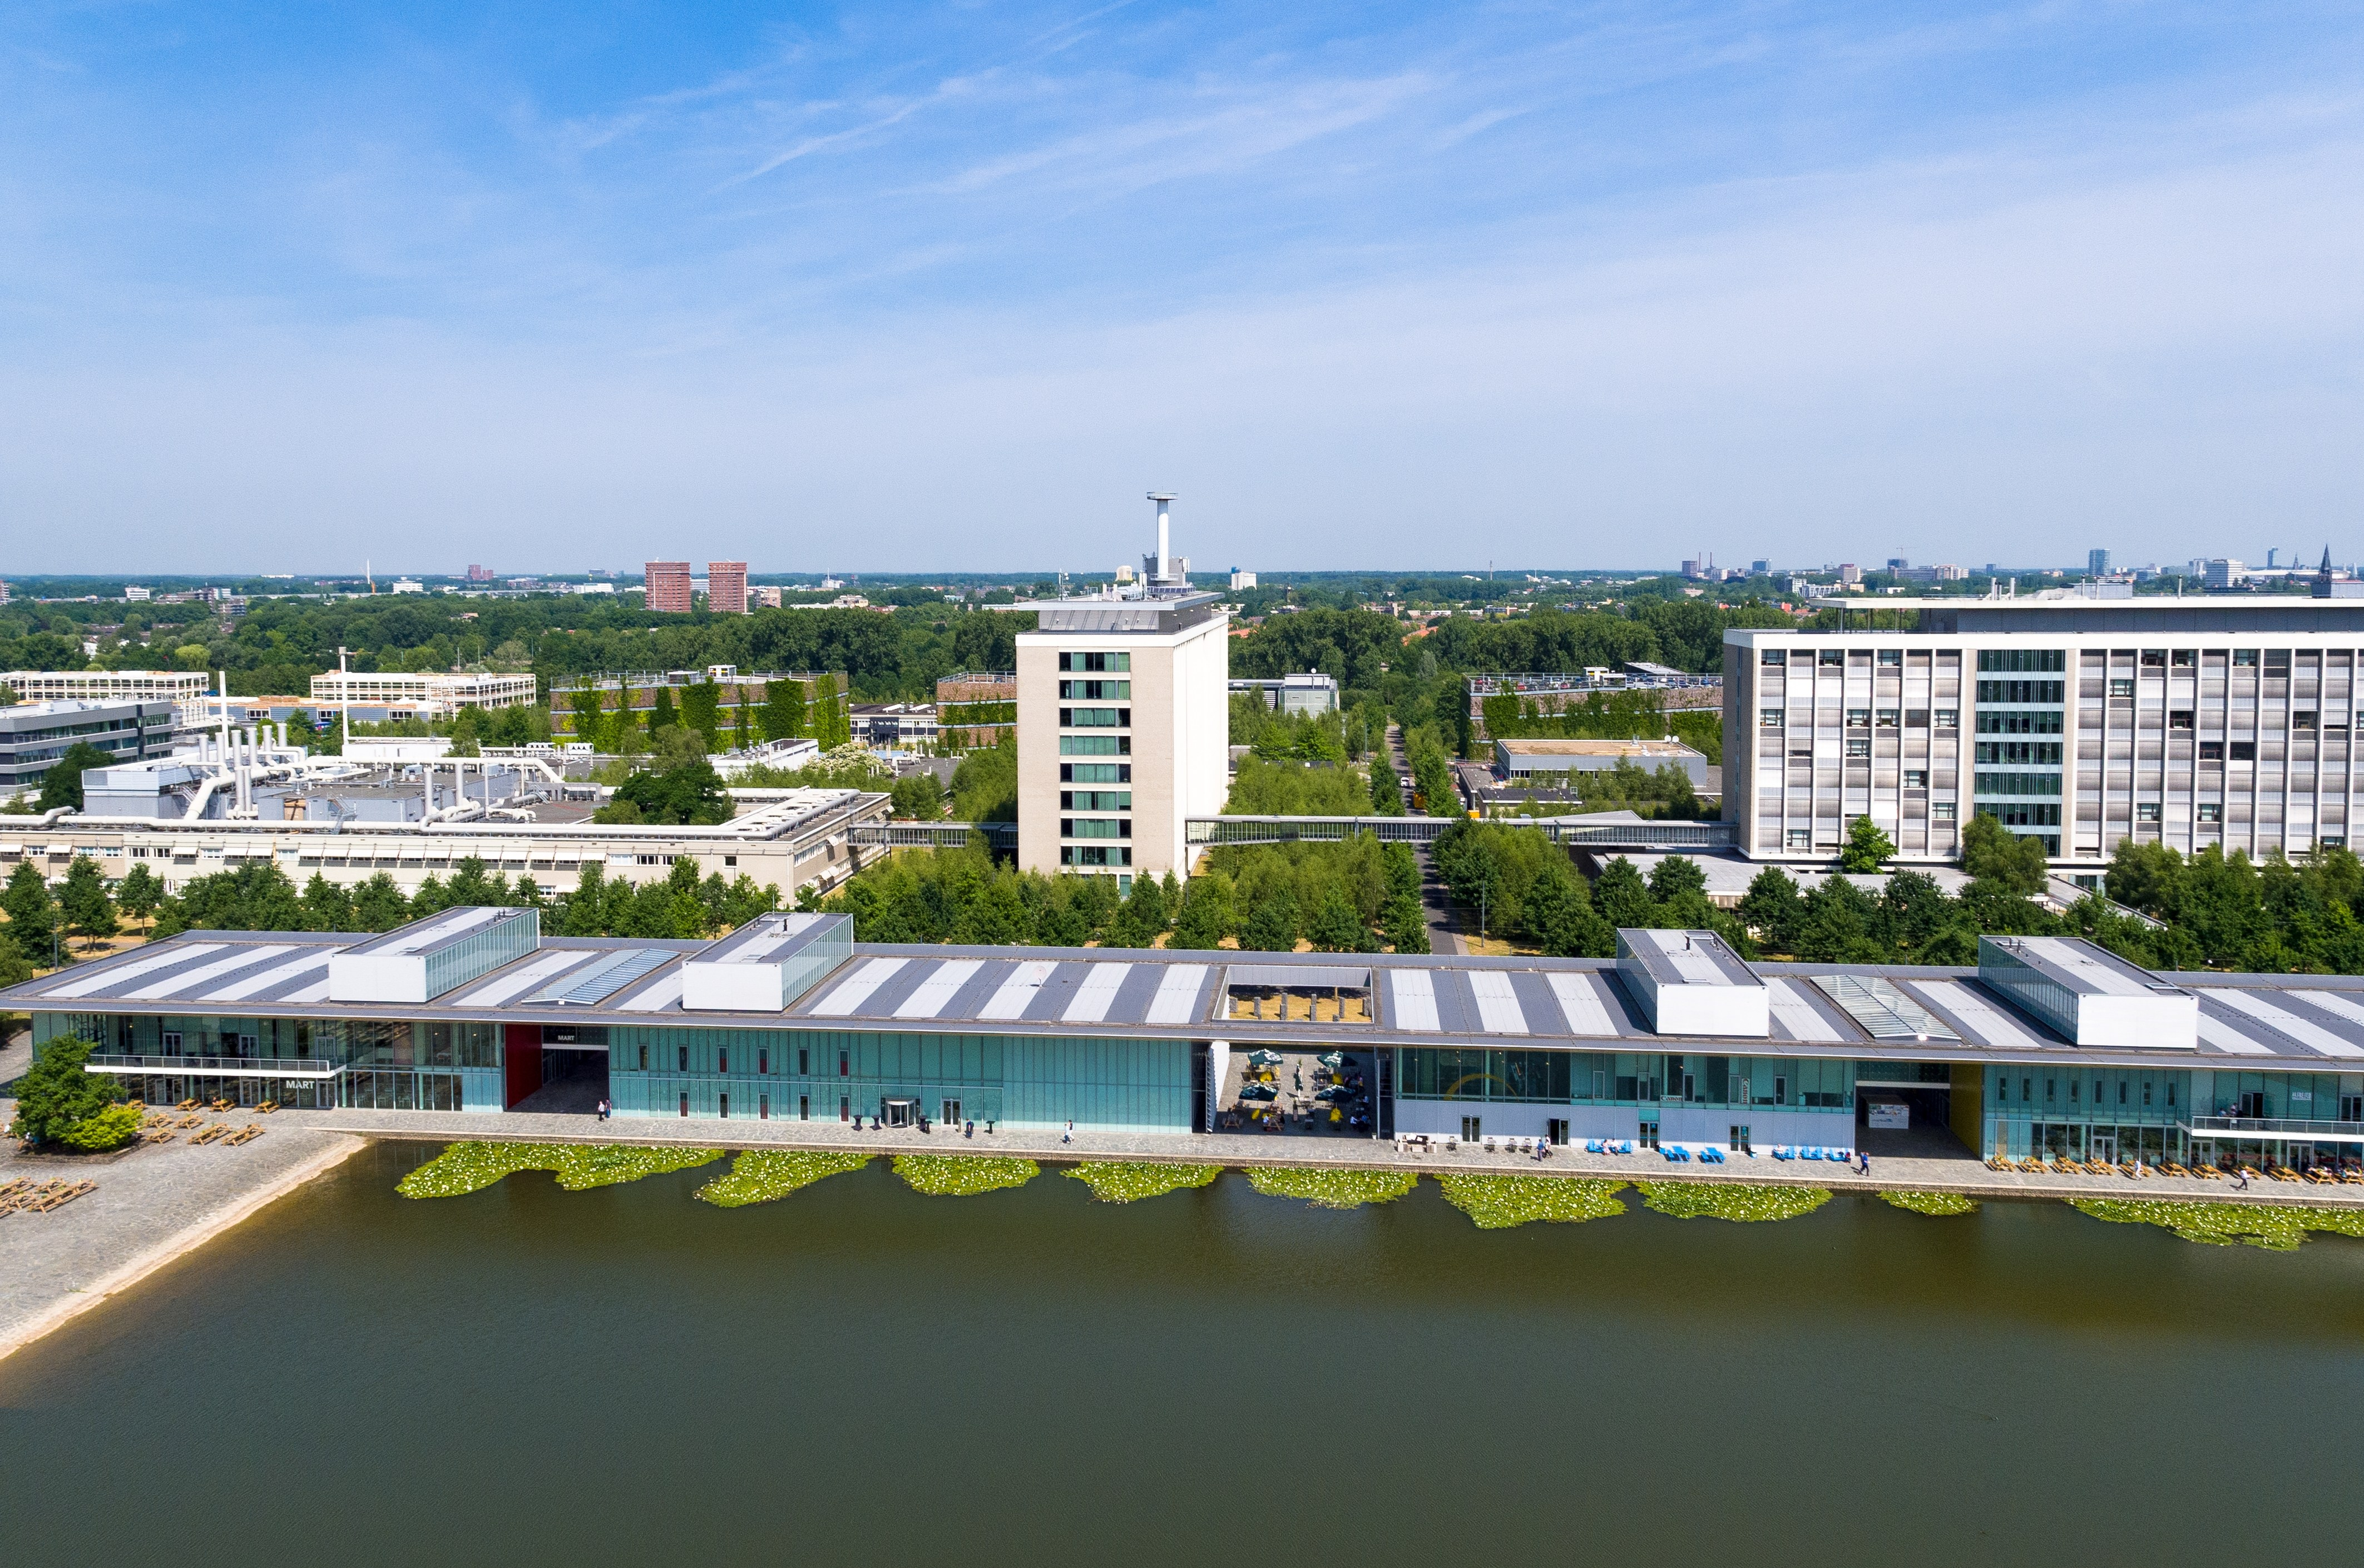 Startups are booming at High Tech Campus – HighTechXL Plaza